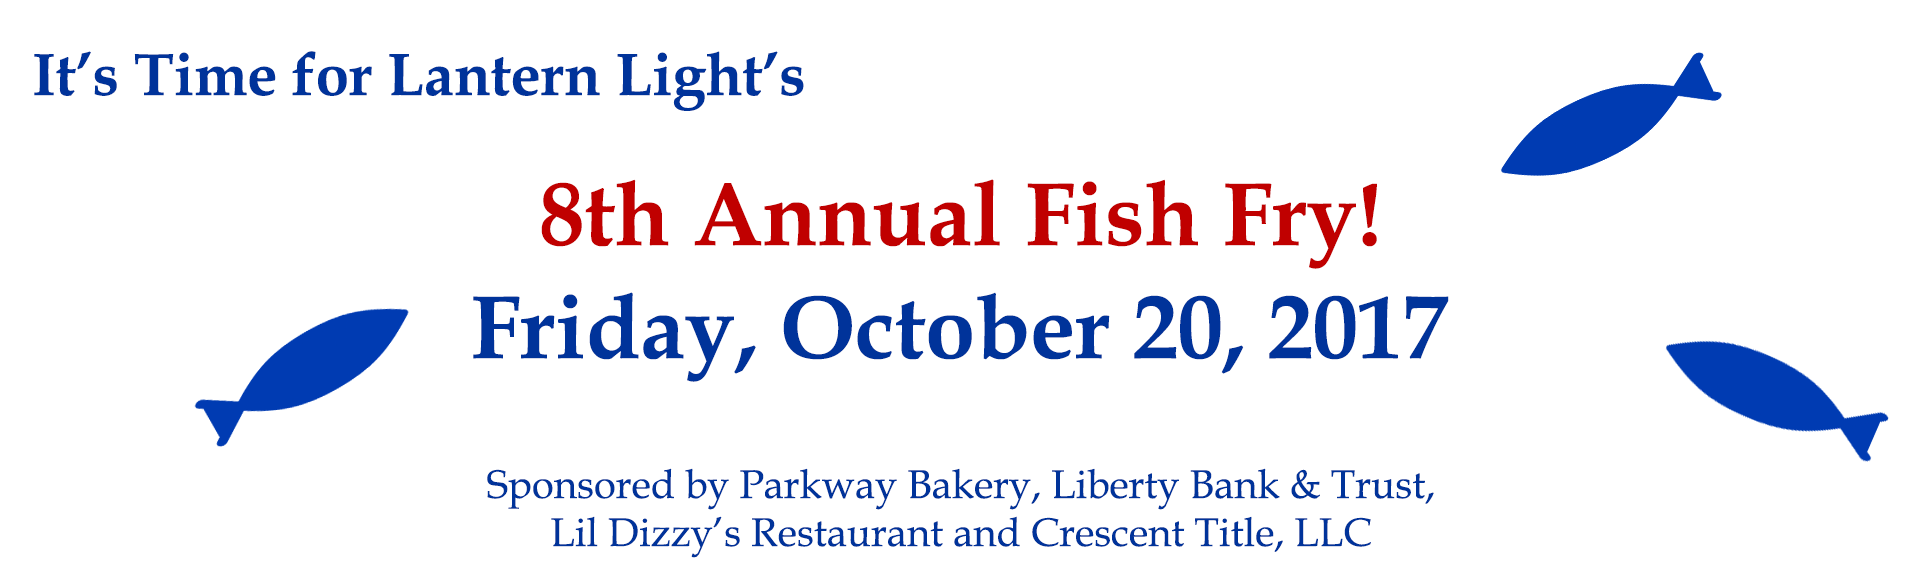 Lanter Light Fish Fry